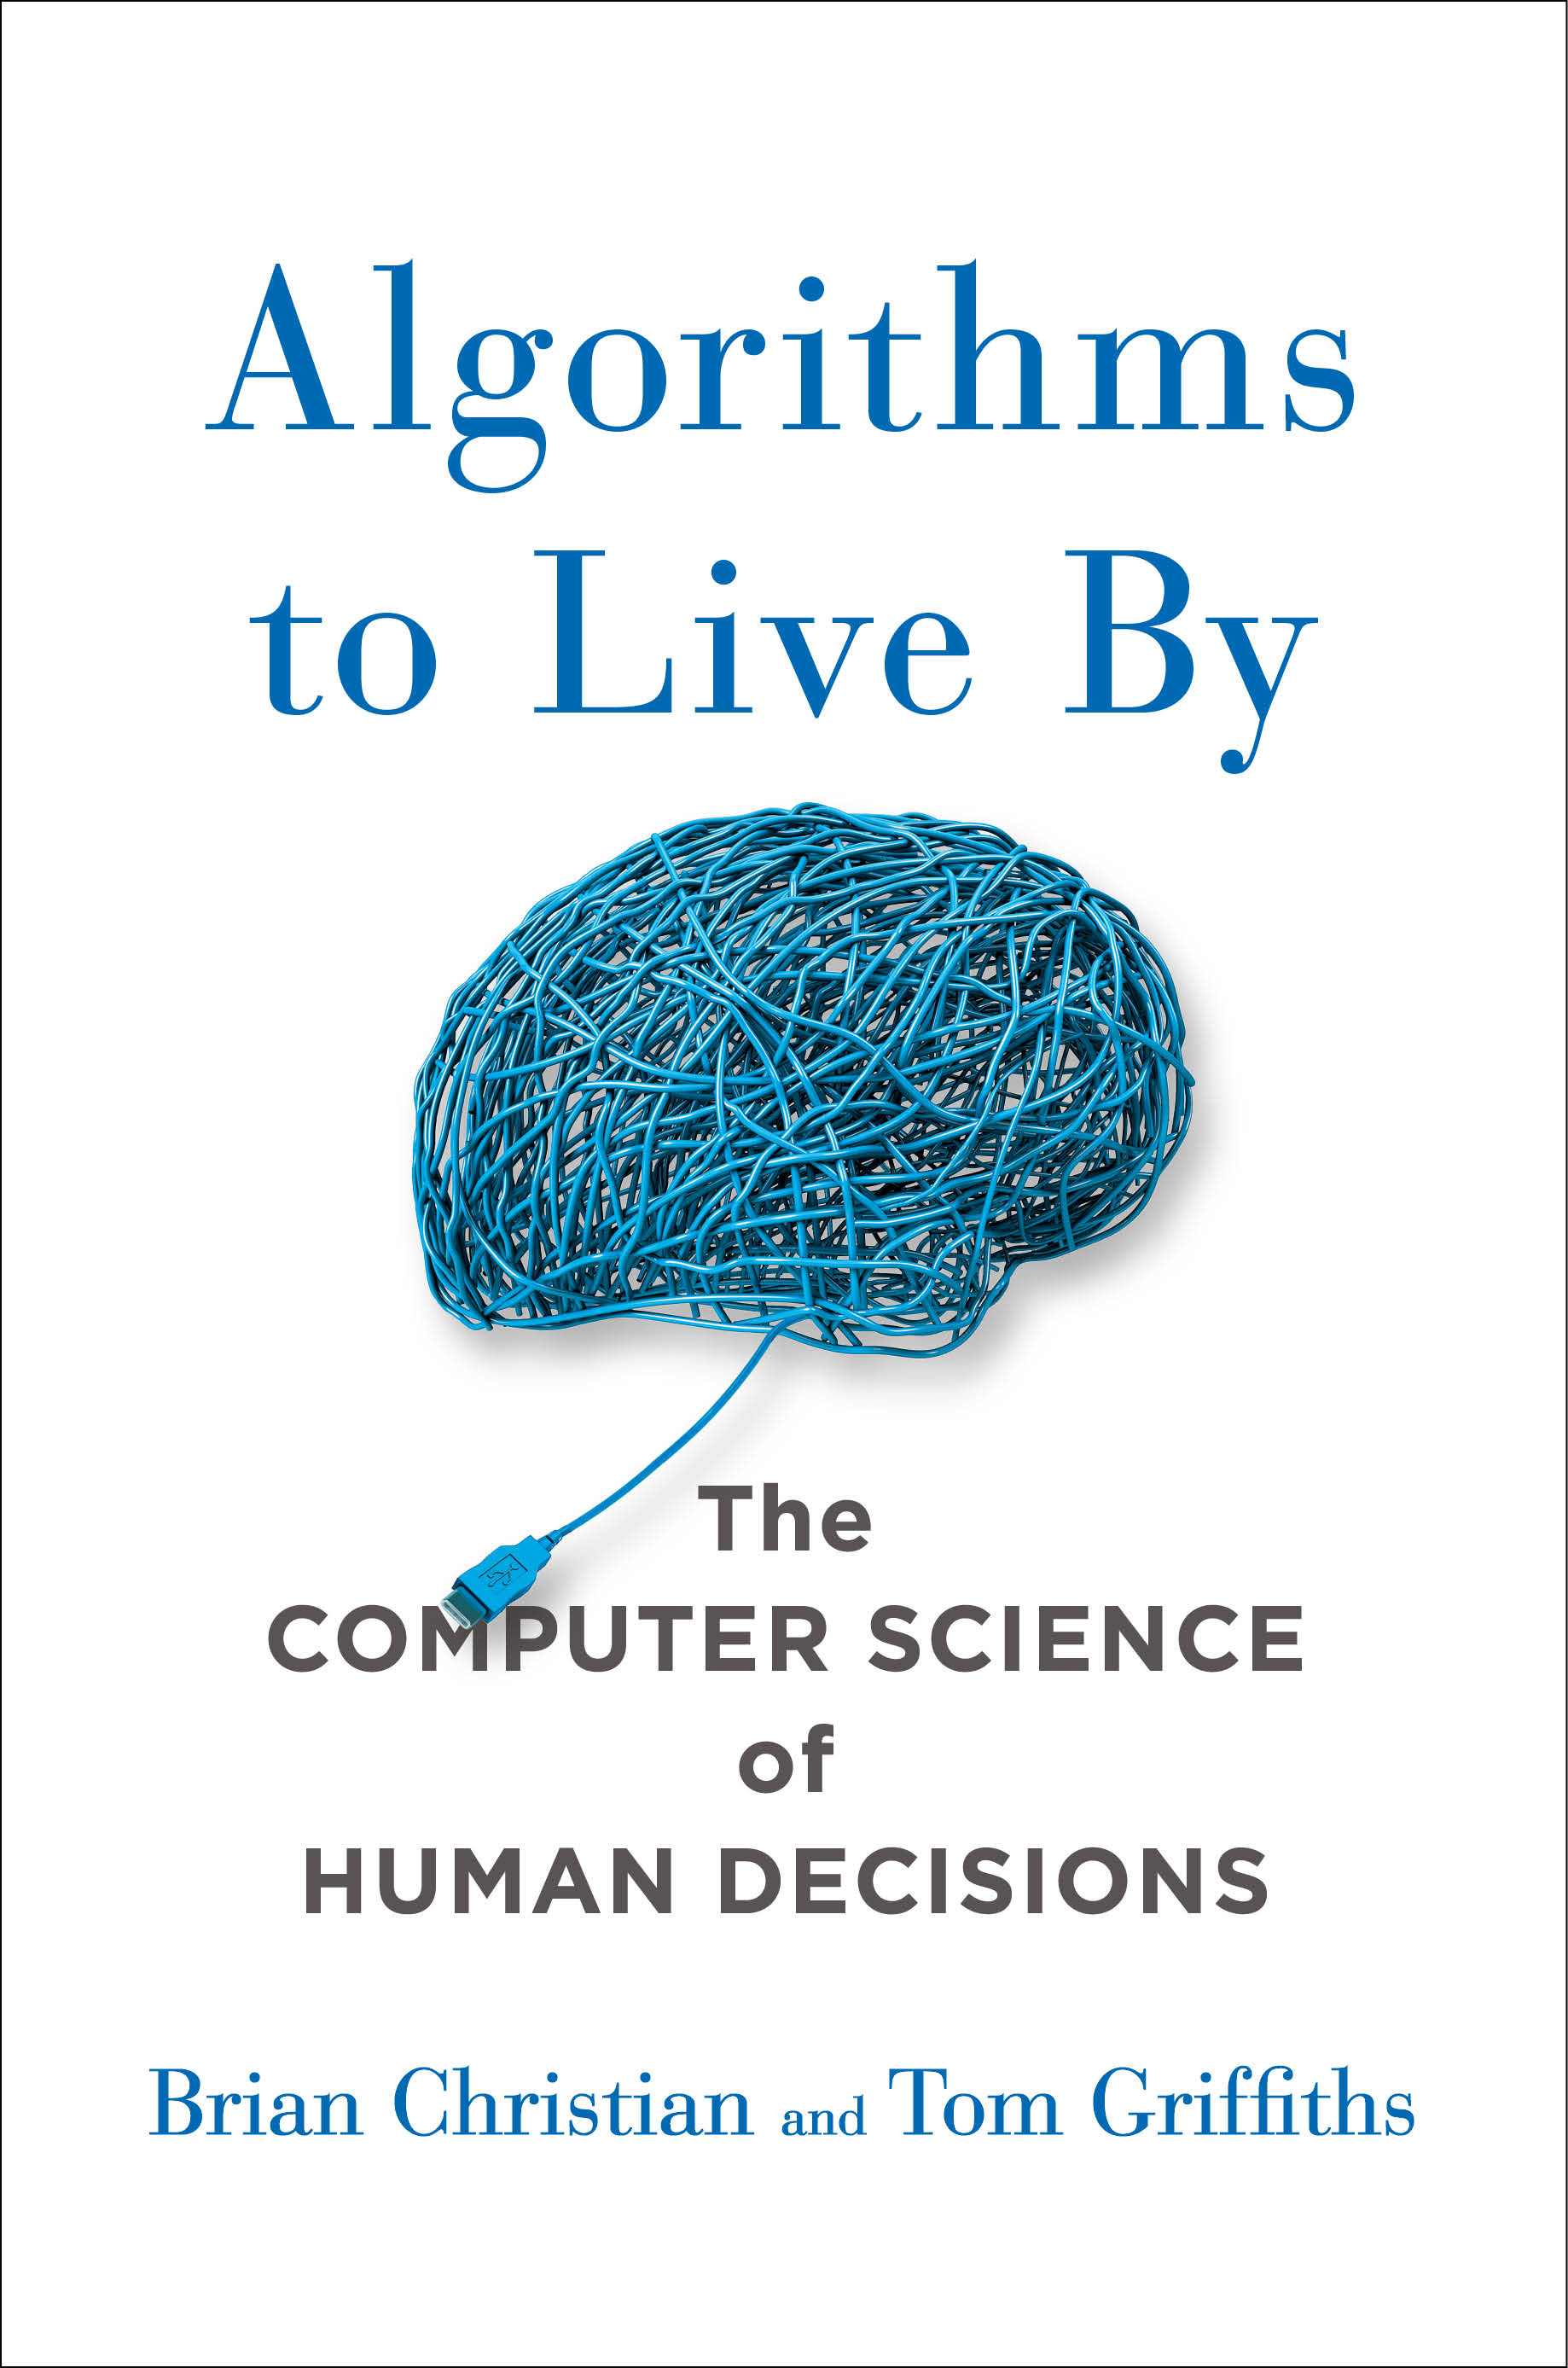 Download Ebook Algorithms to Live By by Brian Christian Pdf